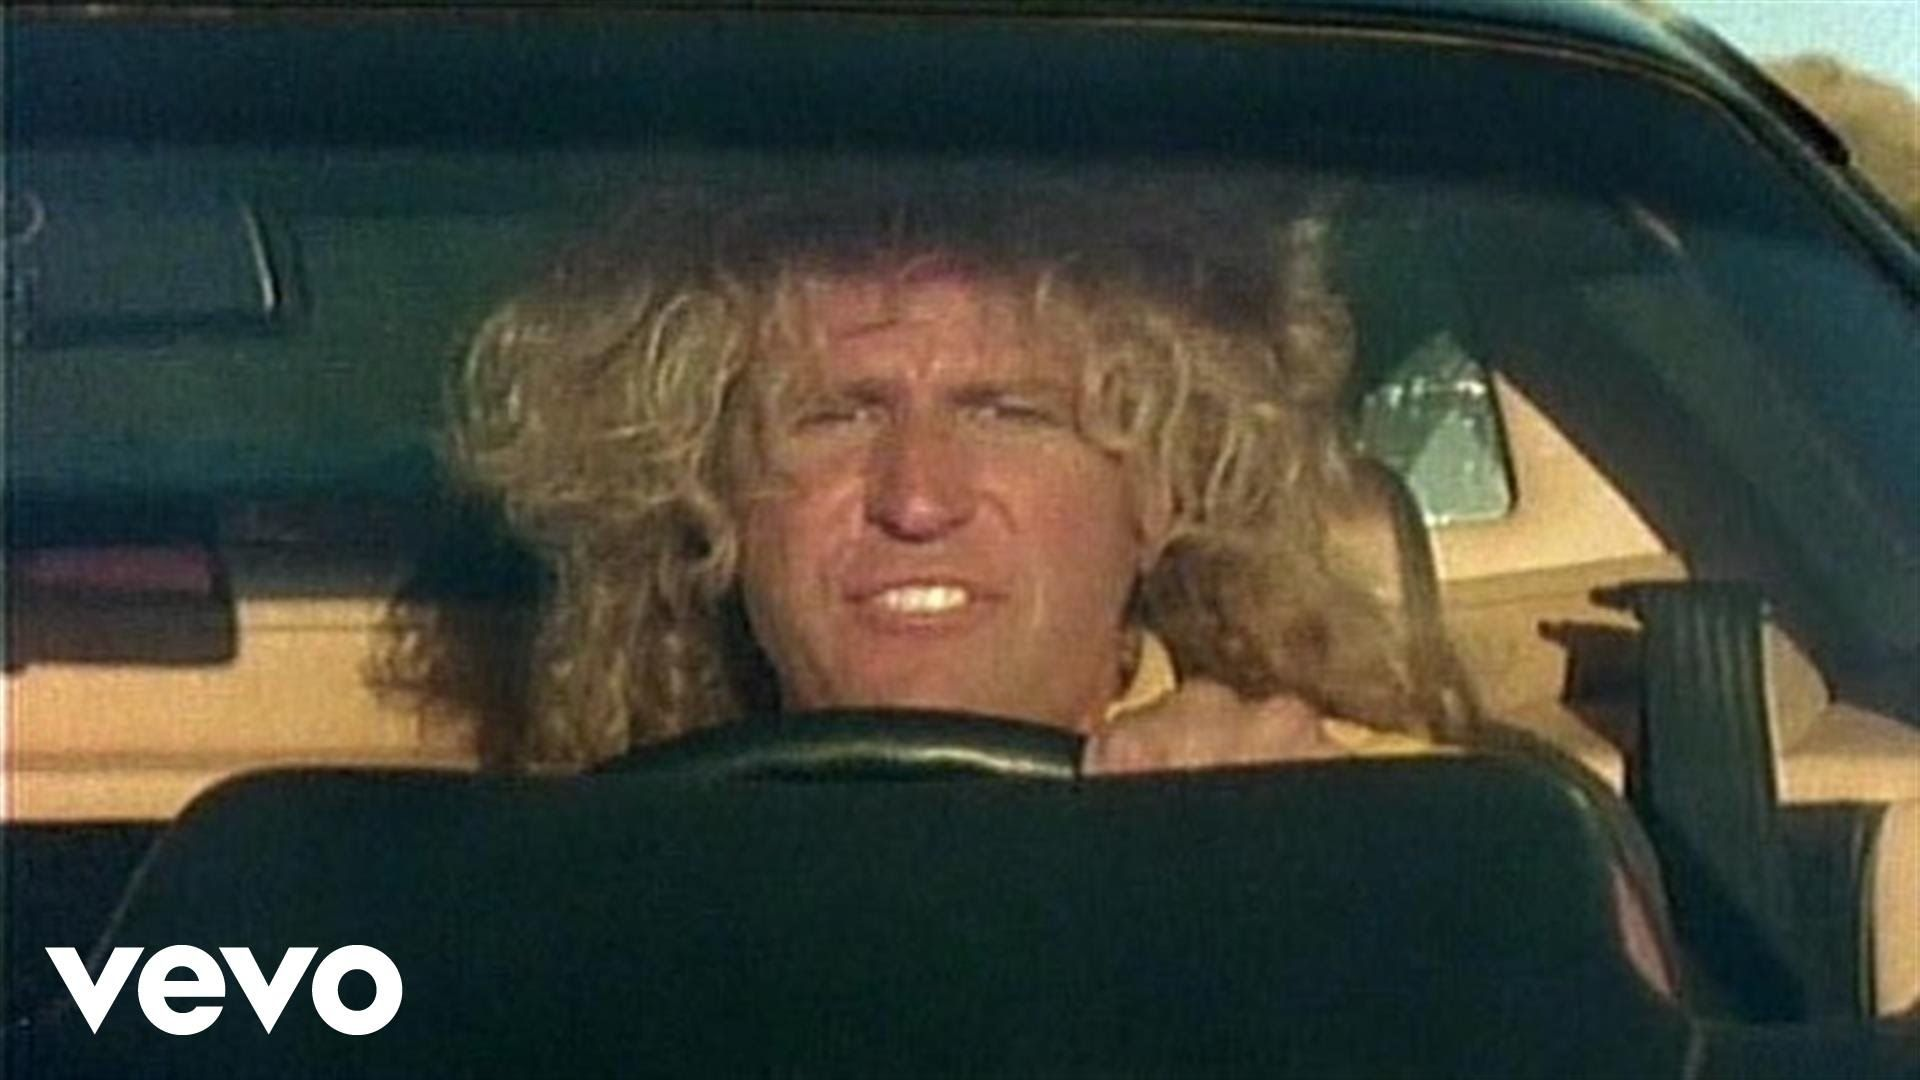 Music Video By Sammy Hagar Performing I Can T Drive 55 C 1984 Geffen Records Sammy Hagar Youtube Videos Music